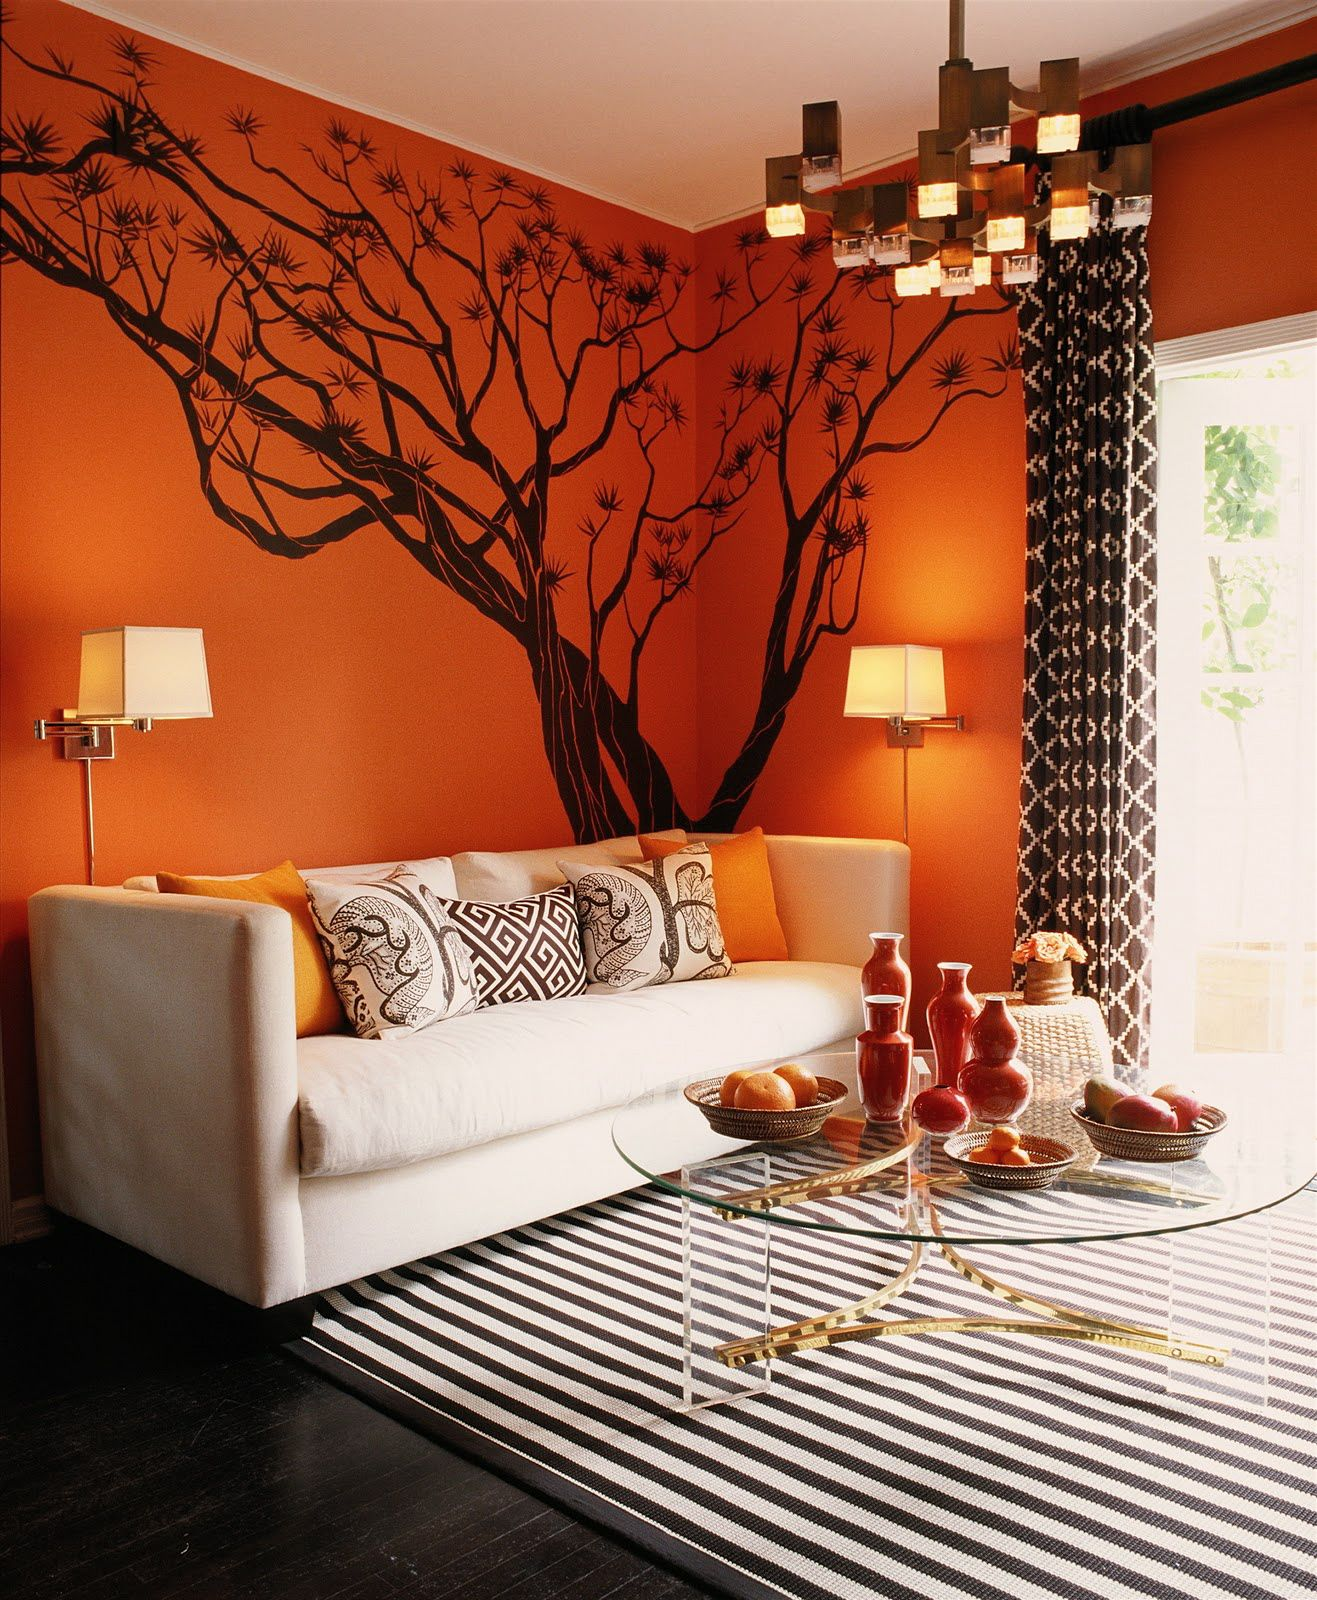 want to do this orange color in our family room with black and